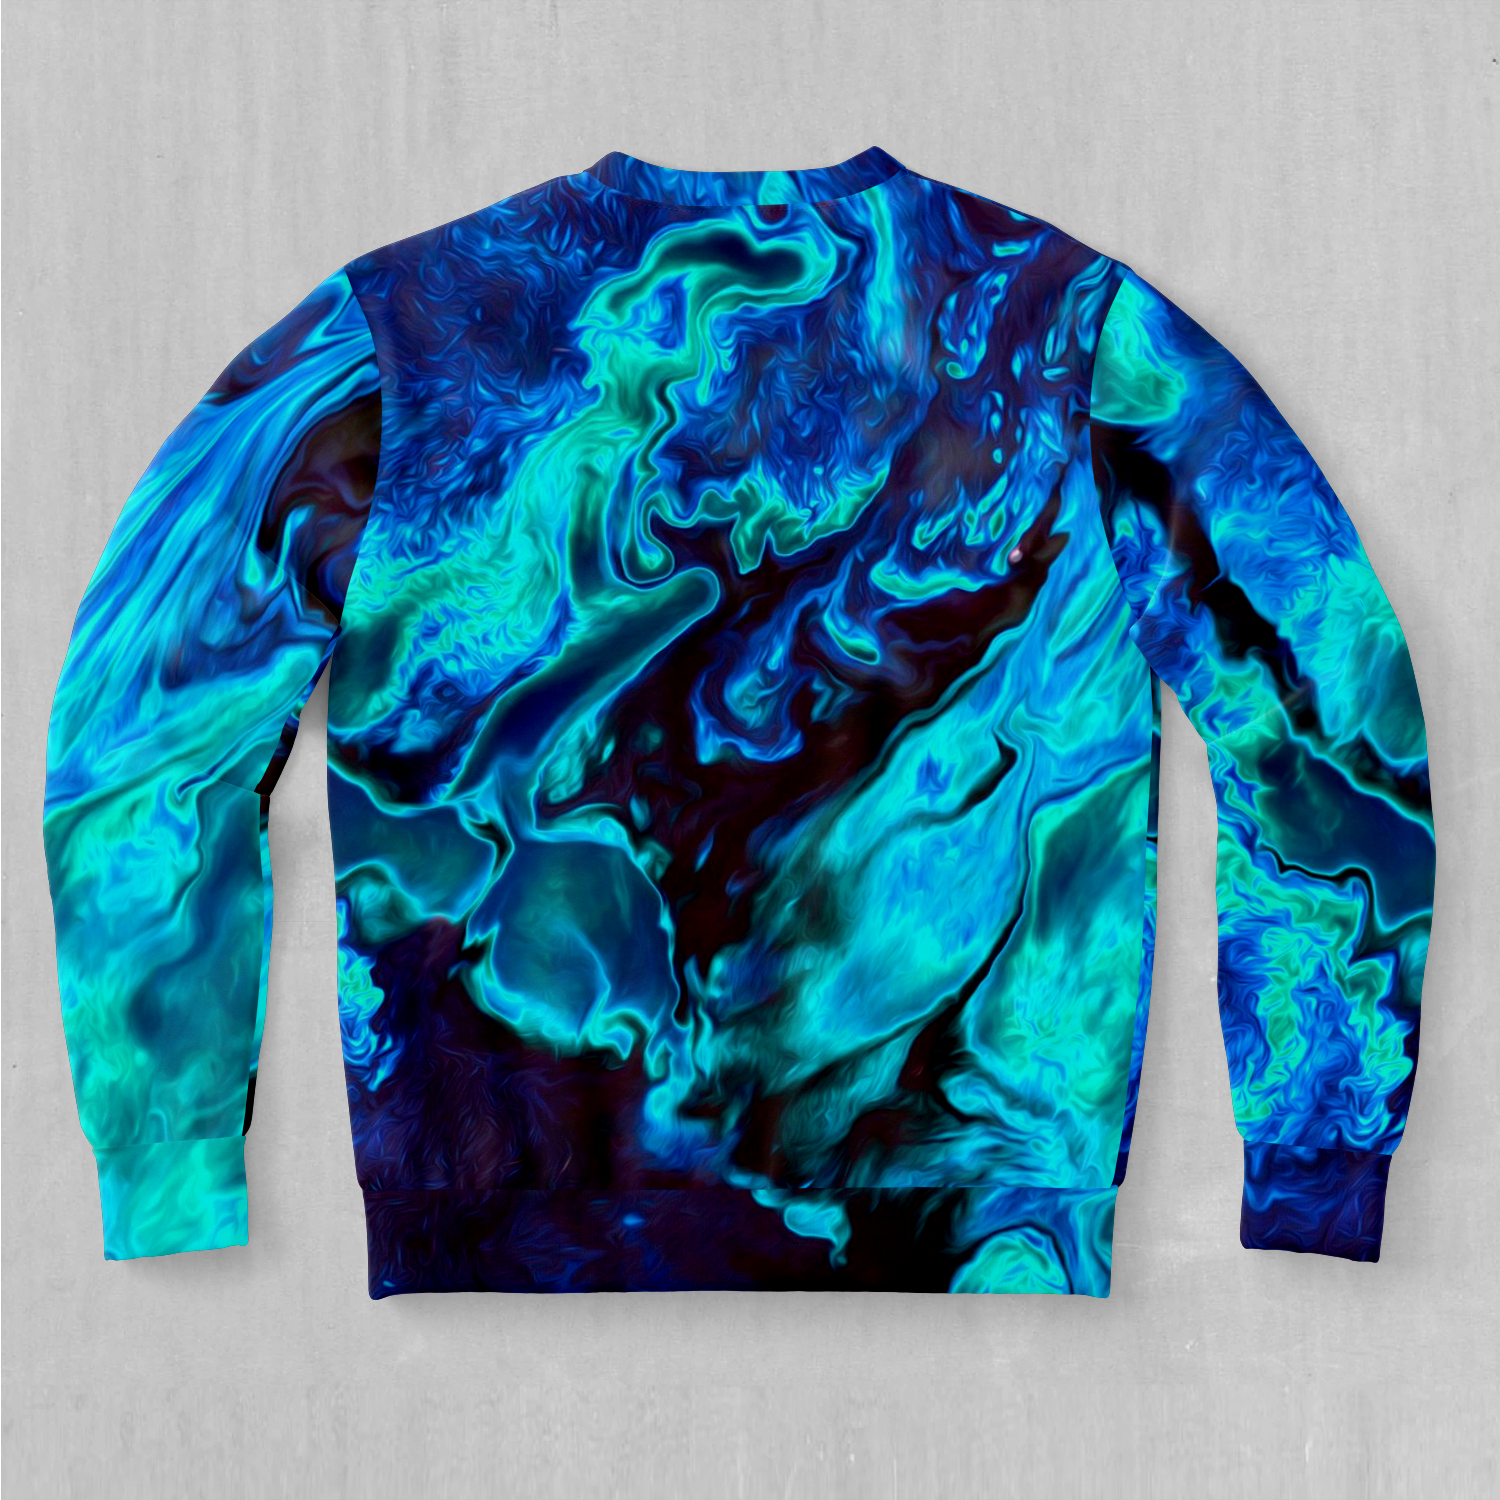 Enigma Sea Sweatshirt